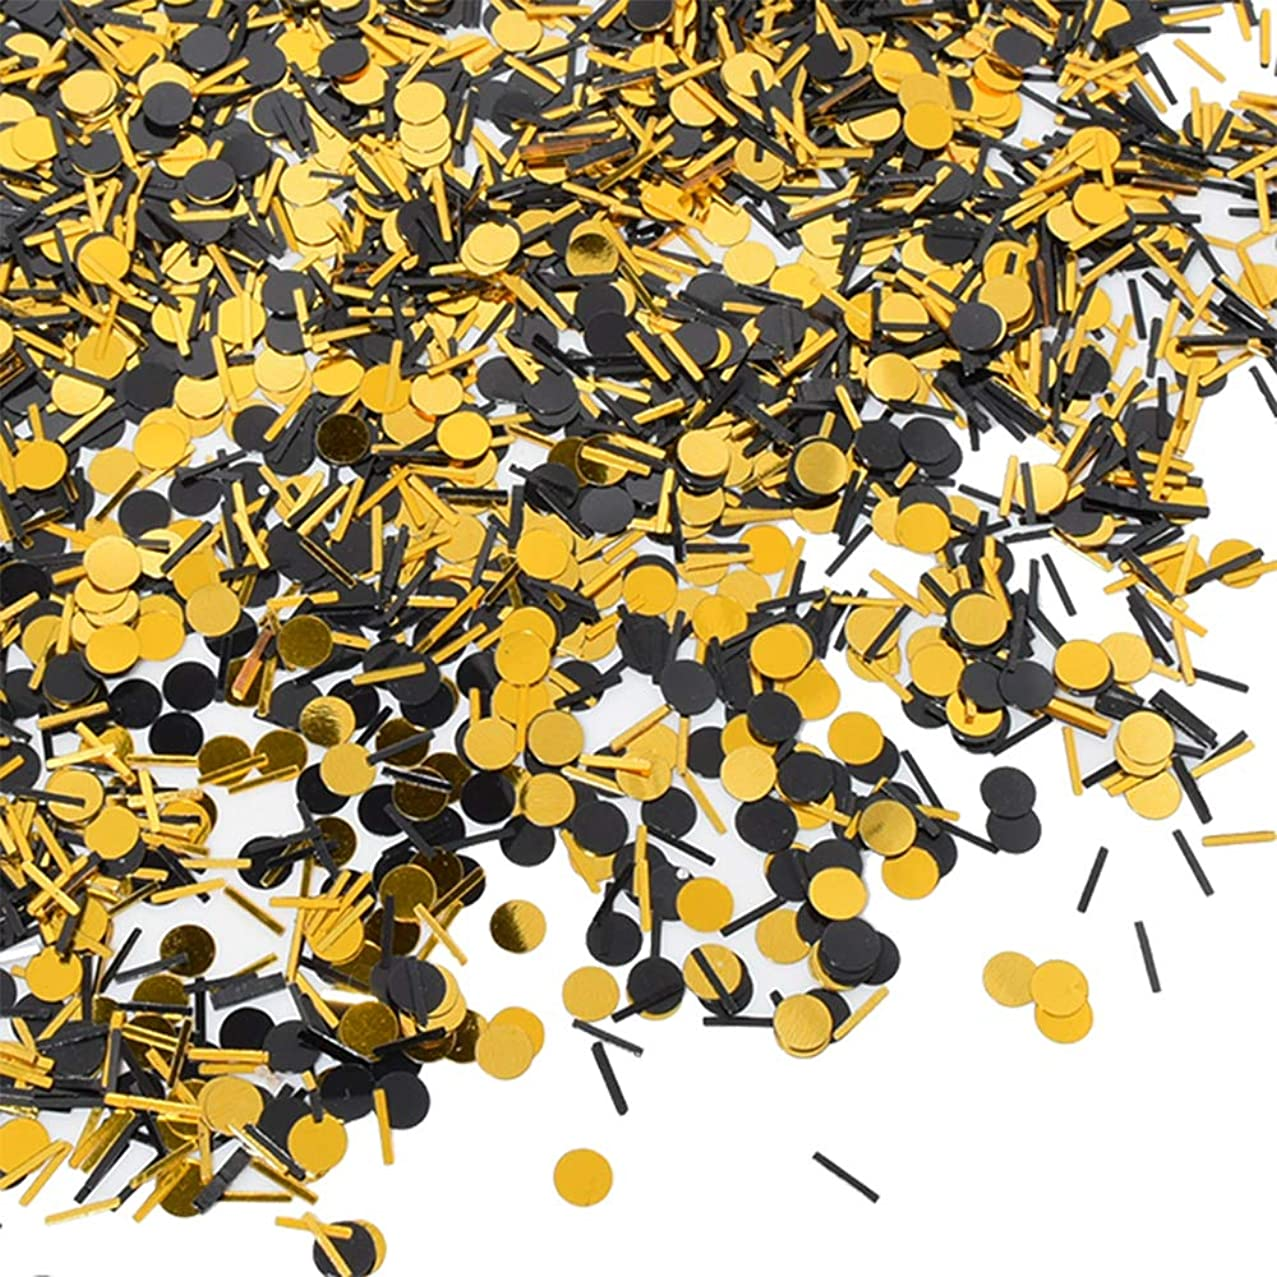 3.5 oz Confetti Dots and Stick Black Gold Shinny Confetti Circles 1/4 Inch Metallic Dot Confetti for Birthday Wedding Holiday Party Decoration Supplies?(About 13000 Pcs)